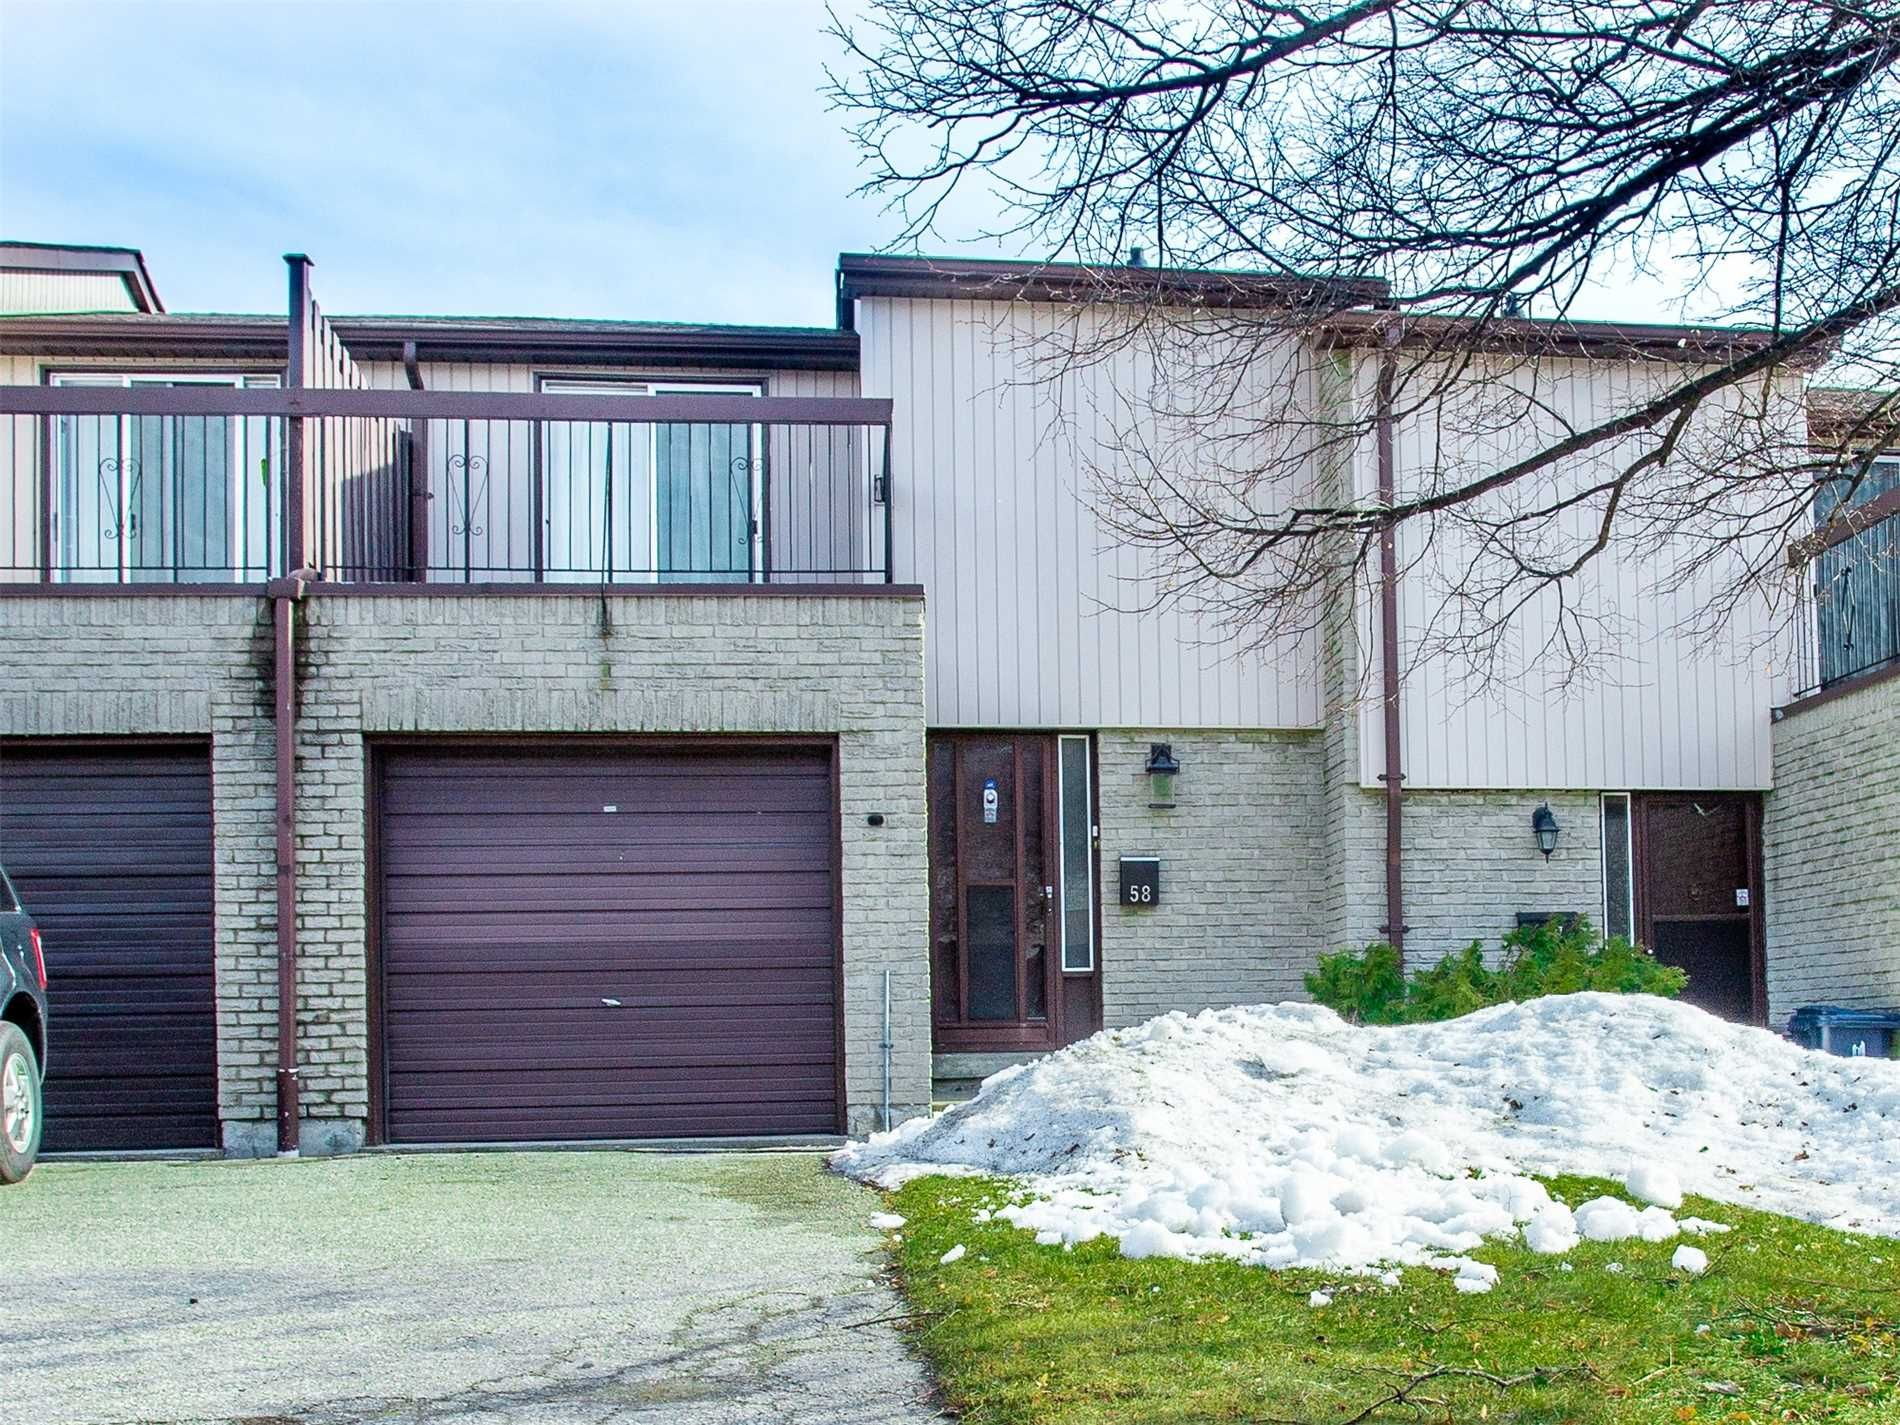 home for sale at 58-175 Trudelle Street